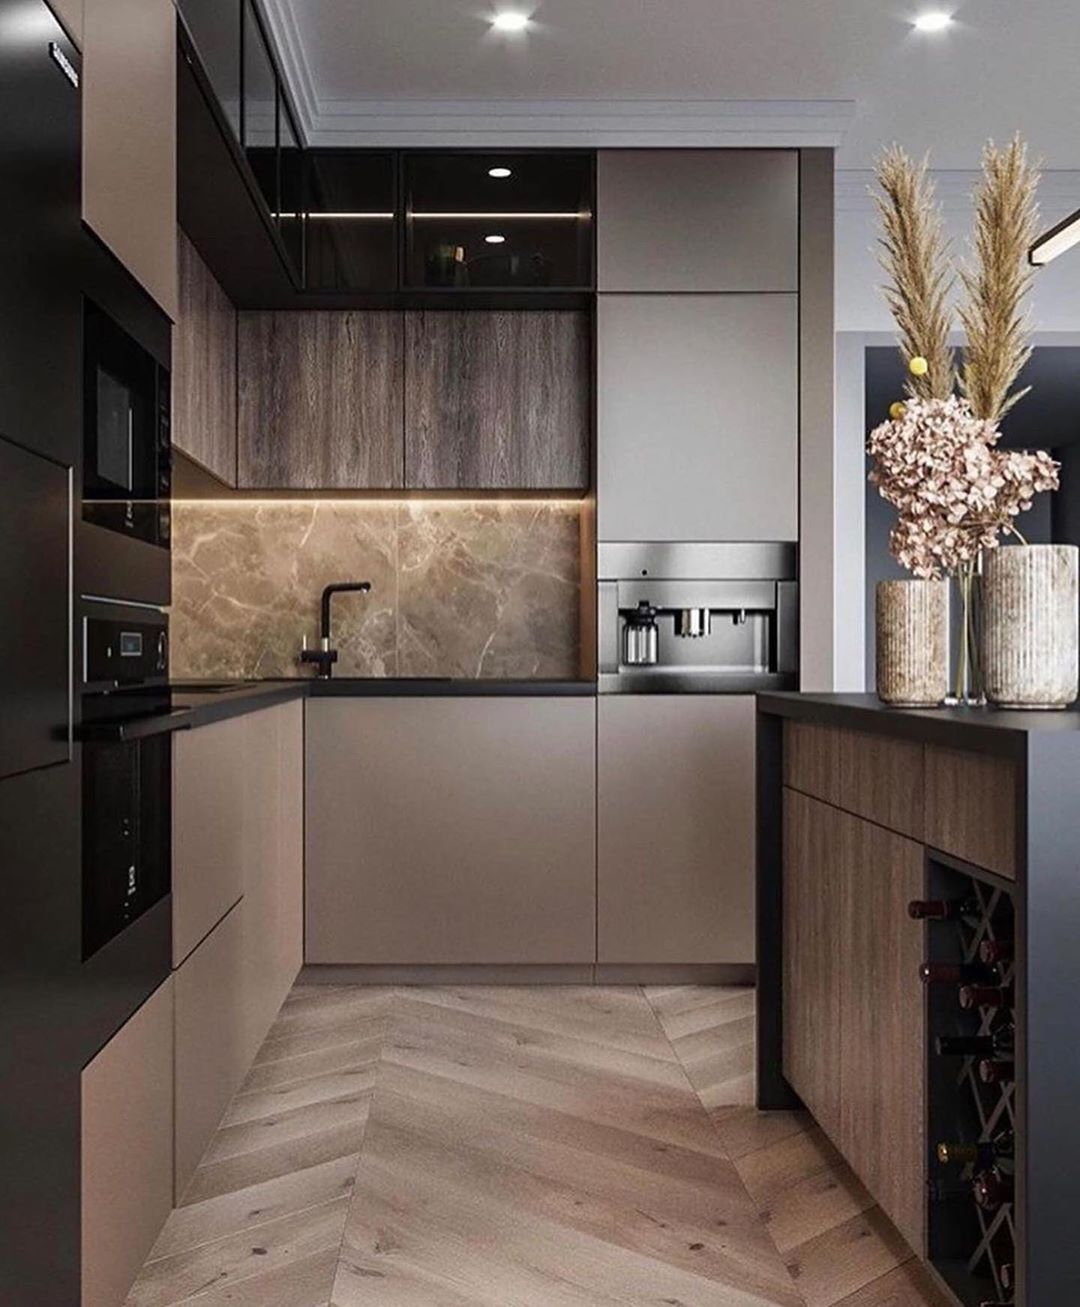 Top Interiors With Neutral Tones In 2020 Kitchen Inspiration Design Modern Kitchen Interiors Kitchen Decor Modern